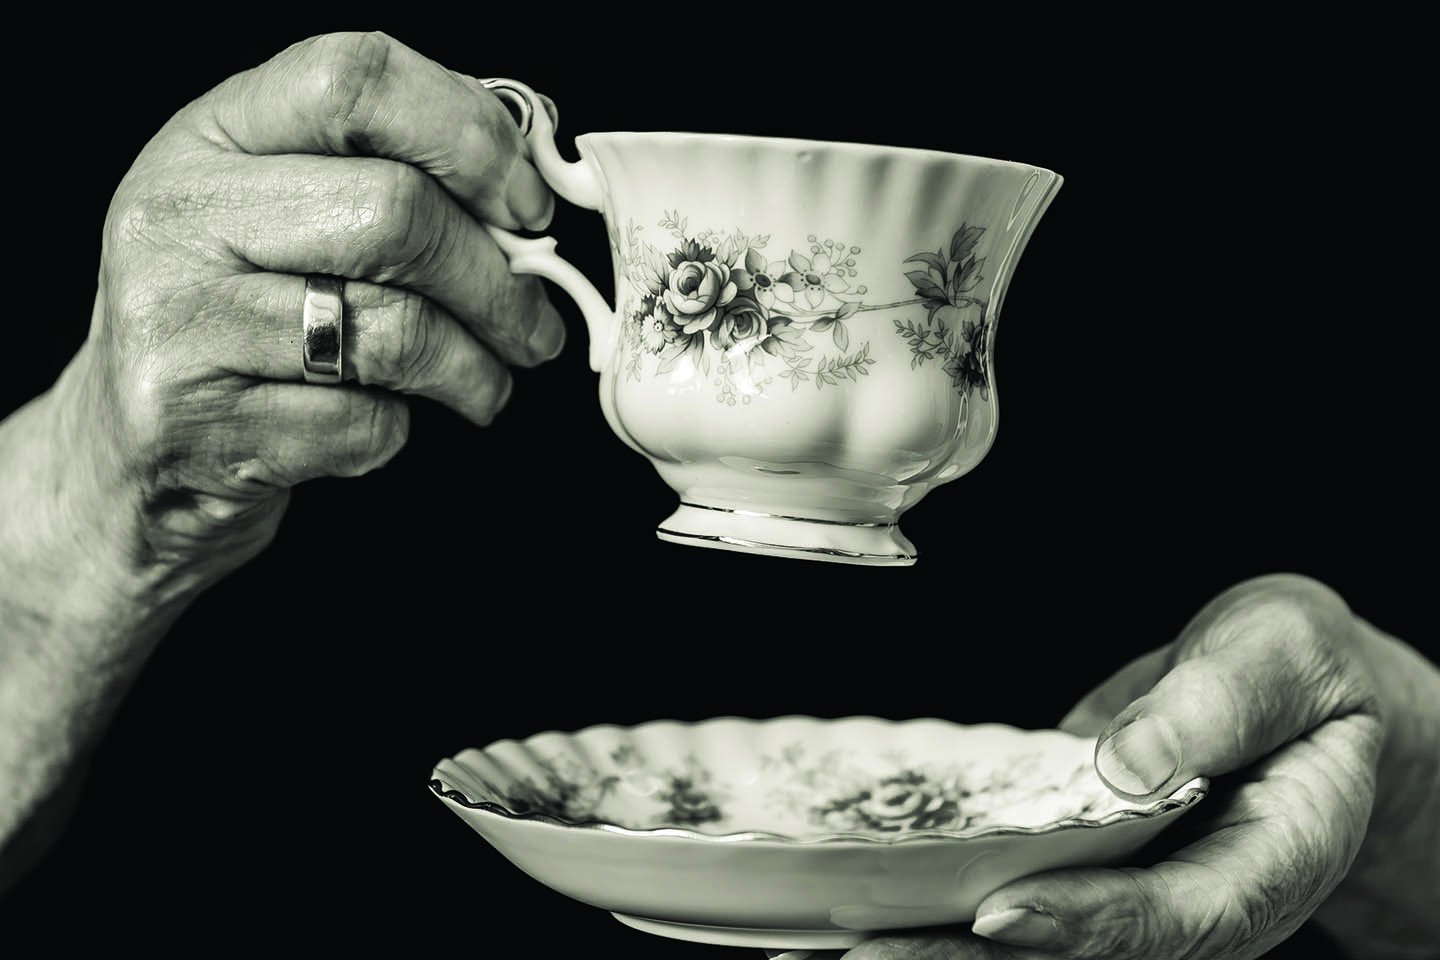 Elderly women holding a cup of tea